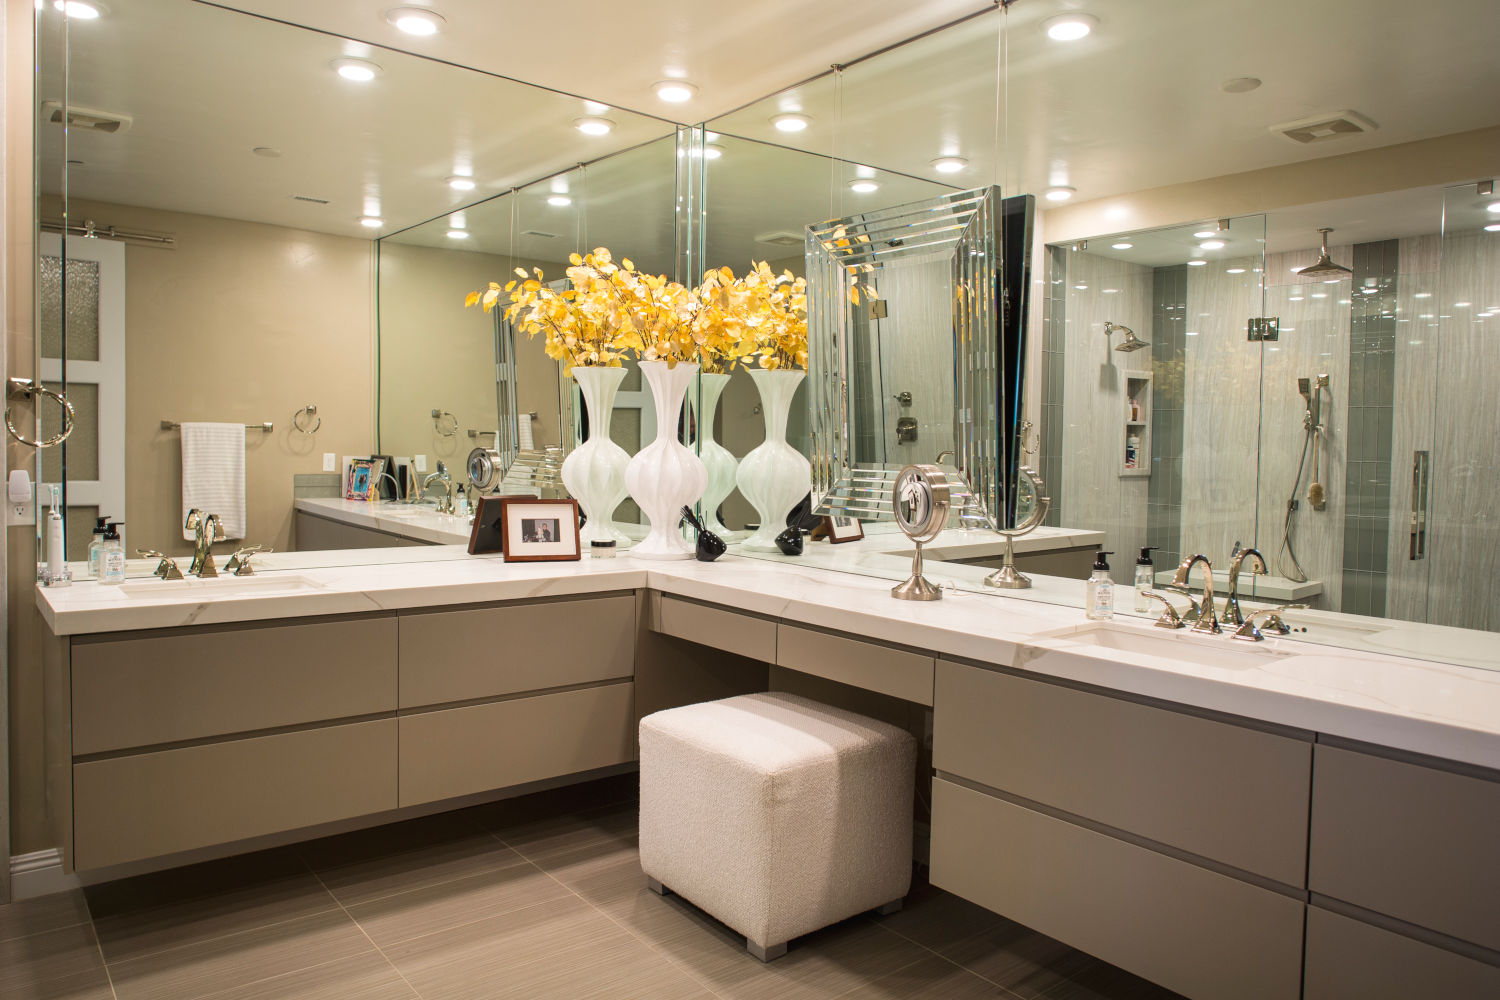 Master bath remodel with modern cabinets.